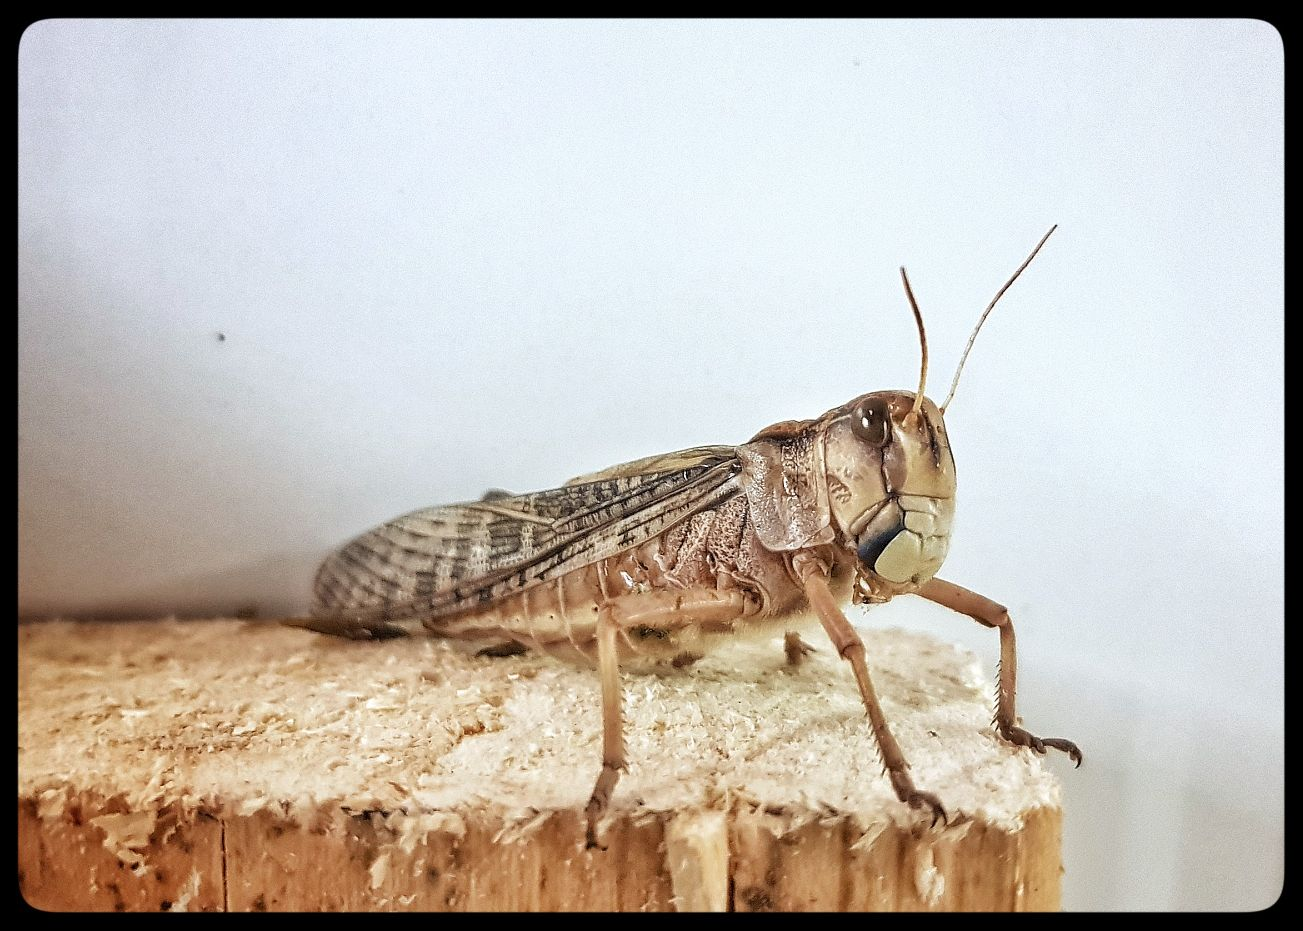 Grasshopper protein based healthy products